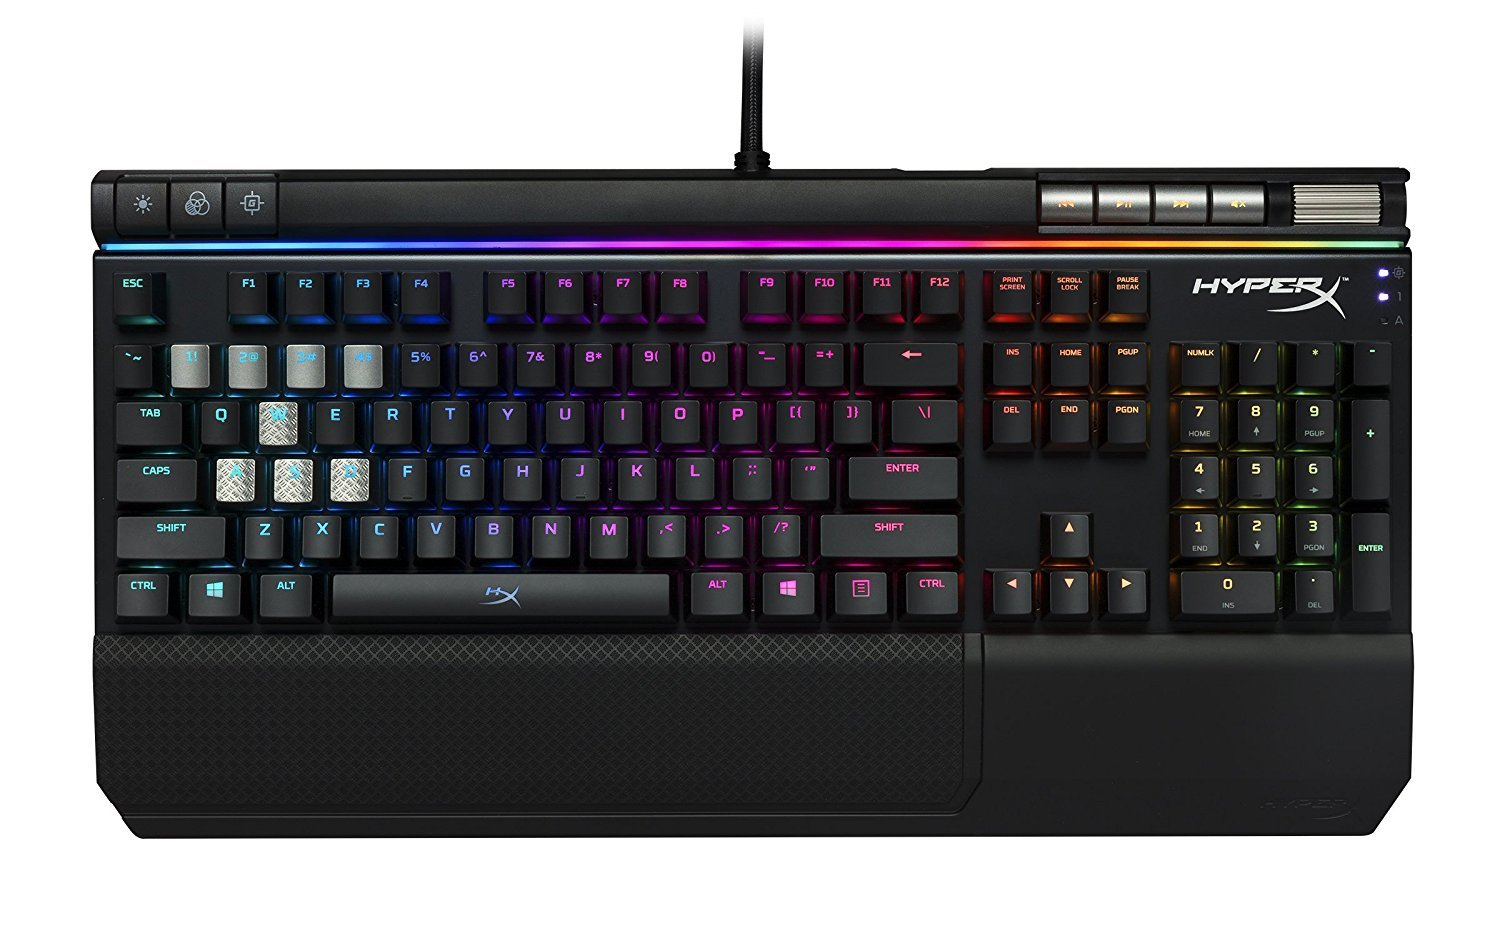 HyperX Alloy Elite RGB Mechanical Gaming Keyboard (Cherry MX Brown) for PC image